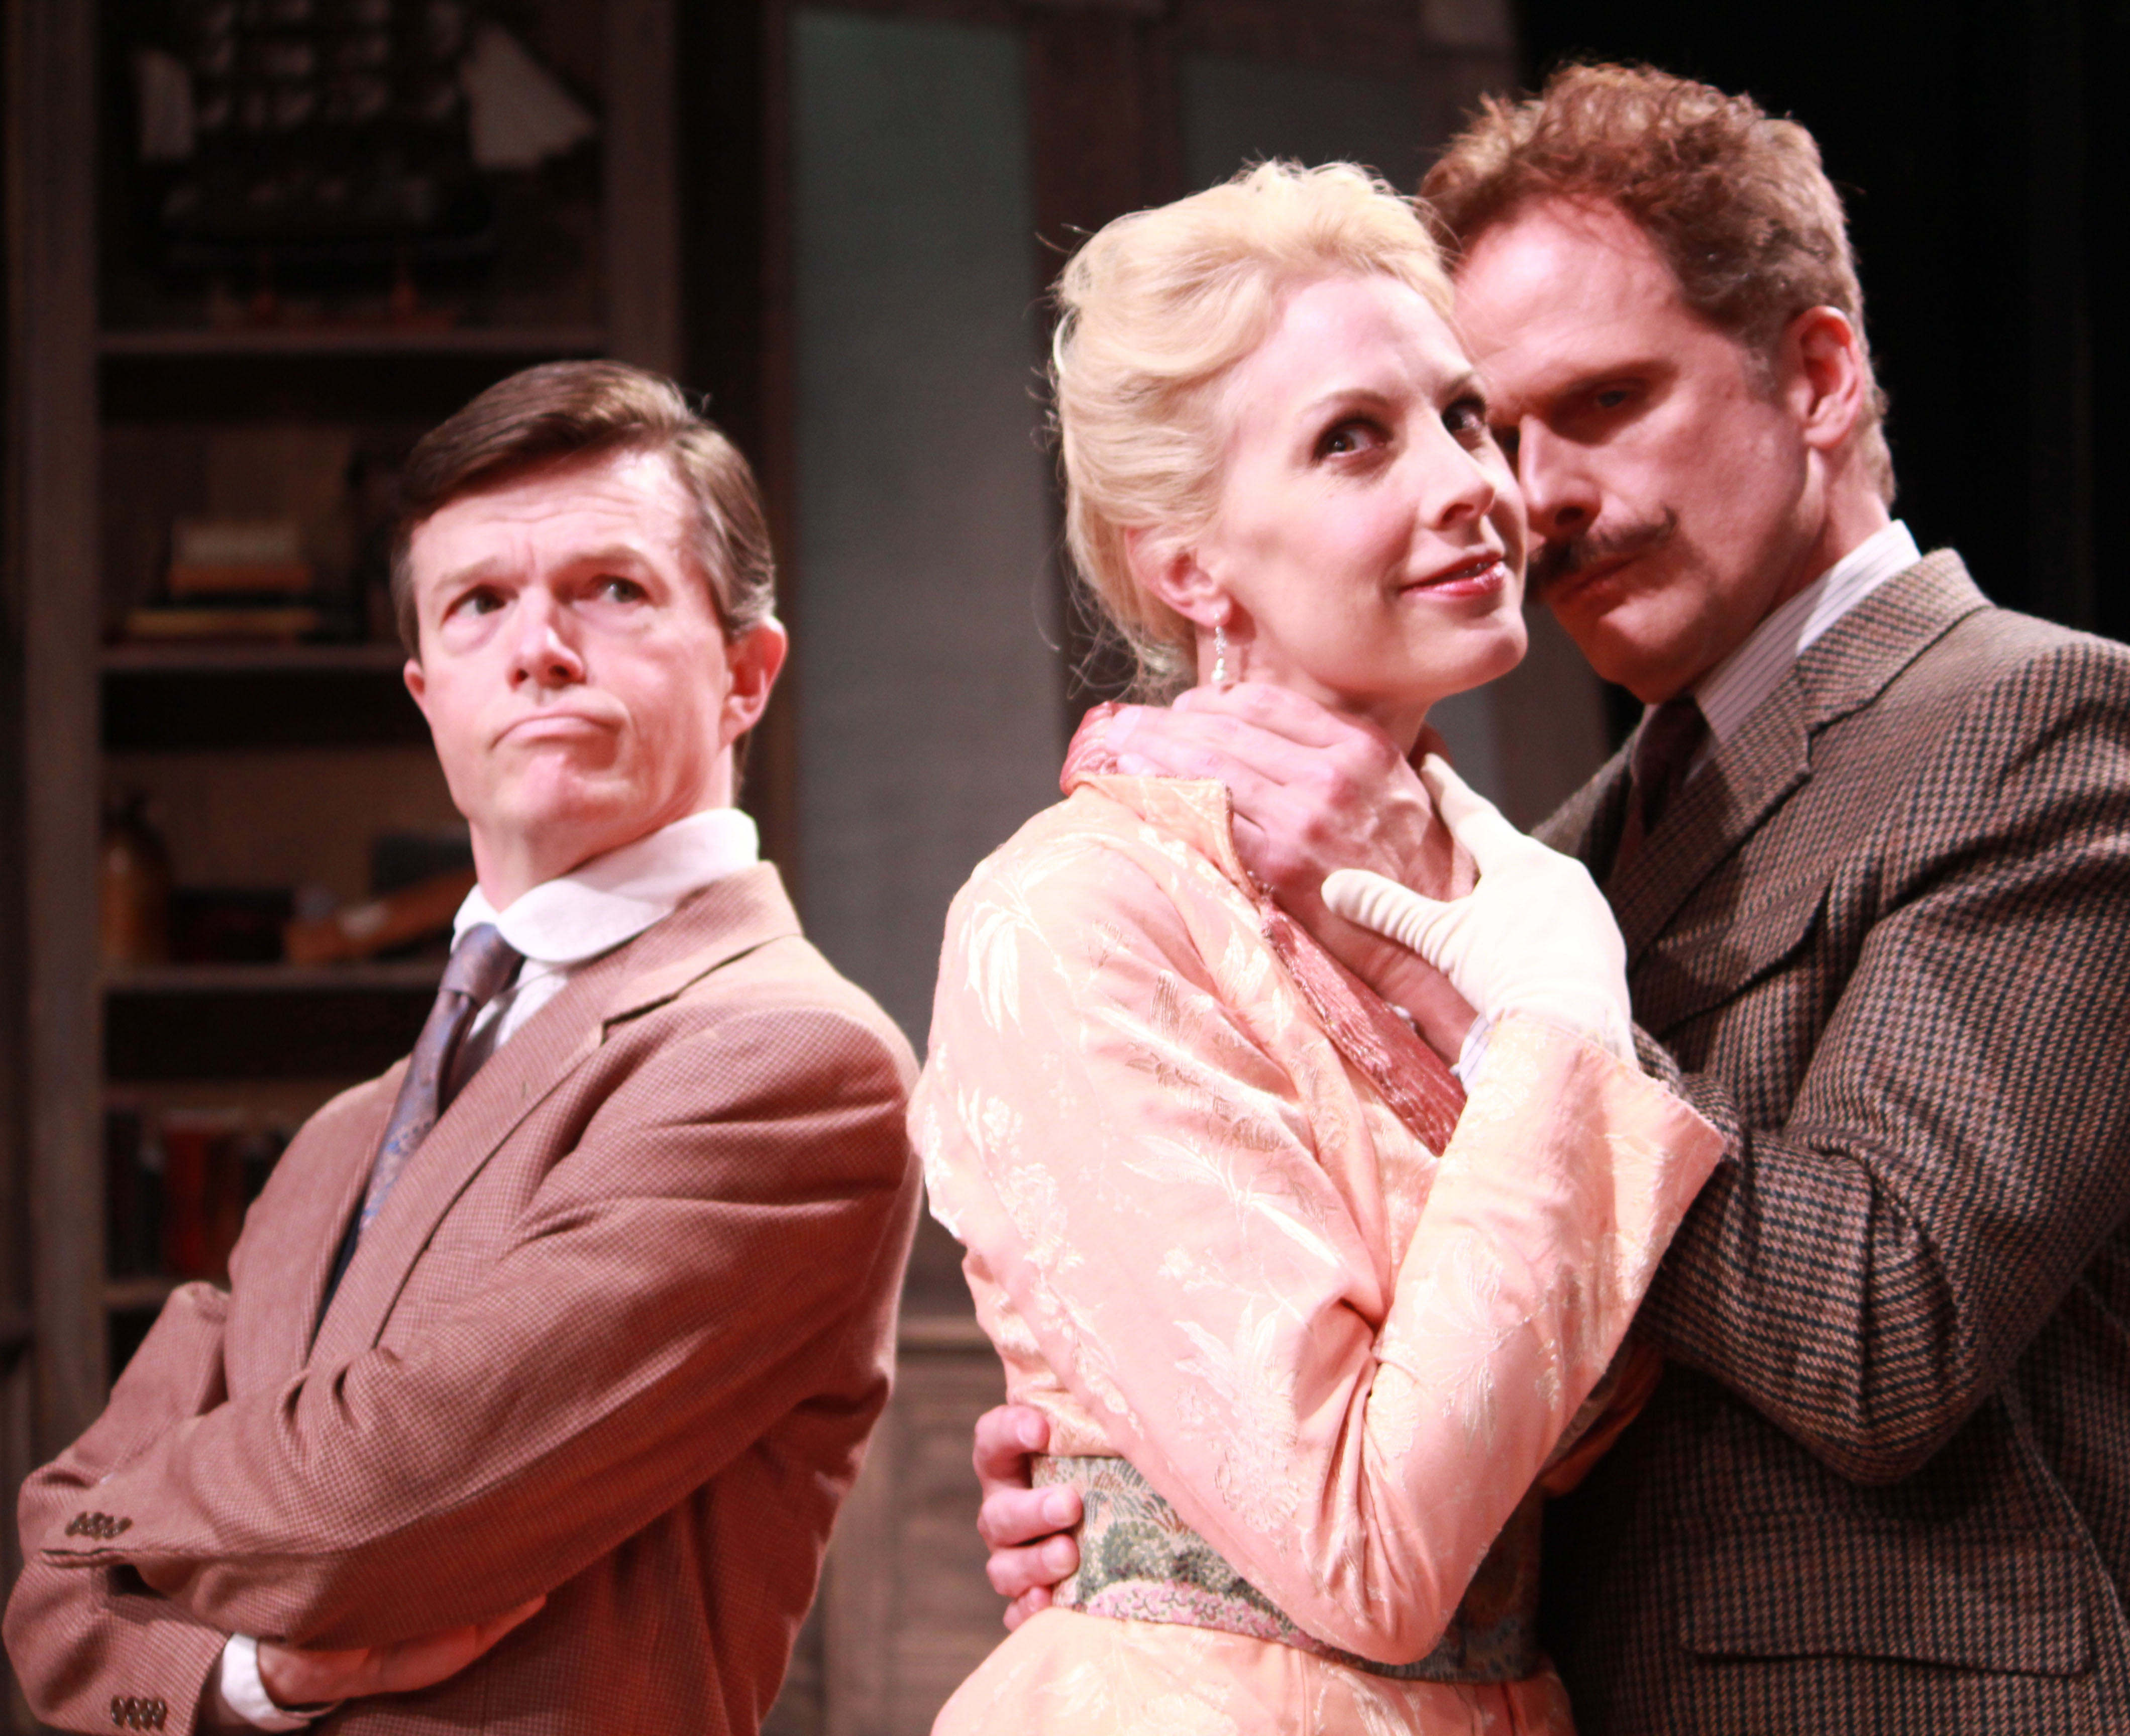 BWW Reviews: Main Street Theater's HEARTBREAK HOUSE is Thought Provoking Social Commentary